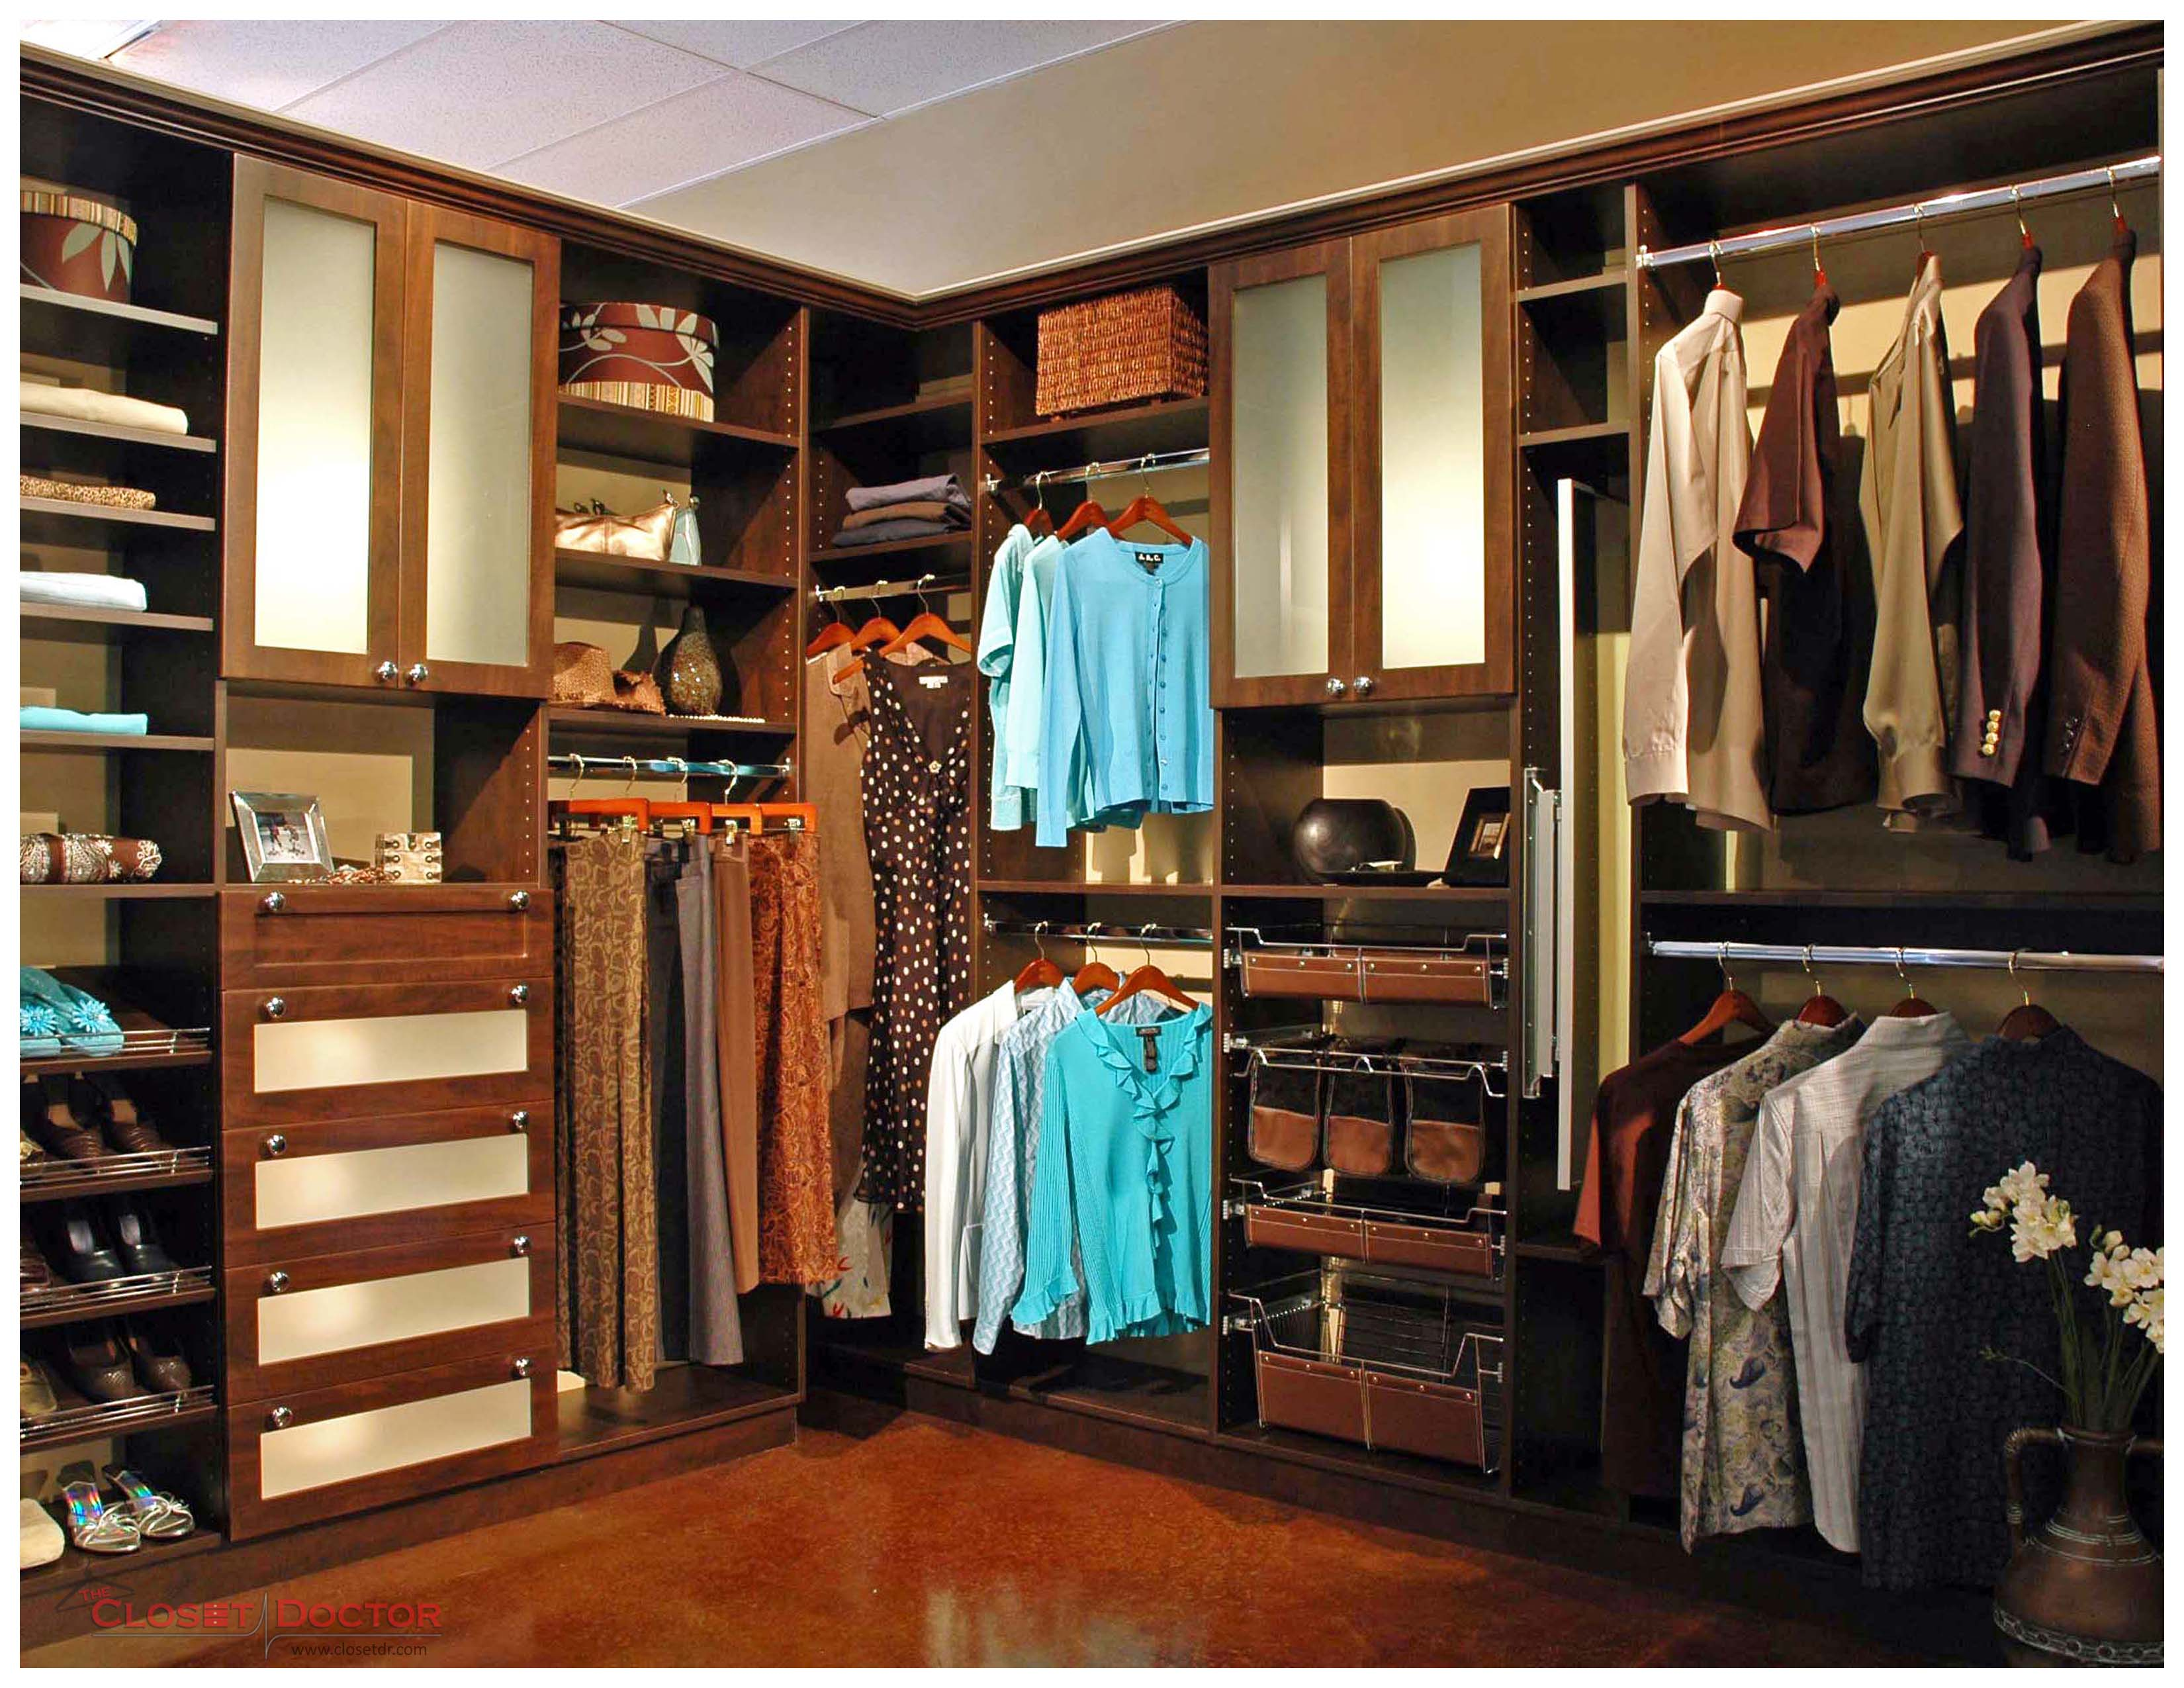 Wall Mounted Vs Floor Mounted Closet Systems